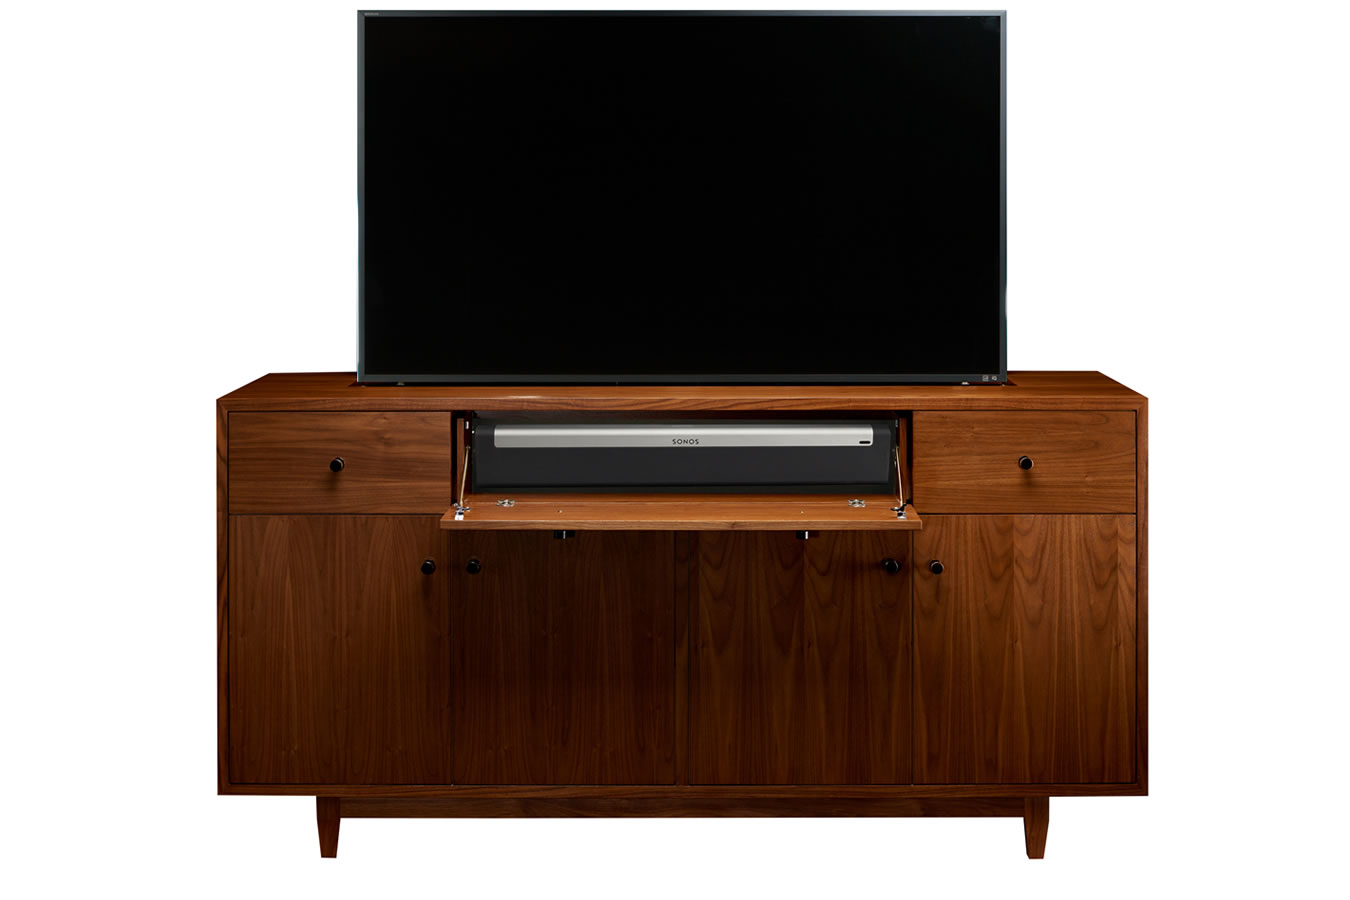 Cabinet Tronix TV lift cabinets hide TV and sound bar